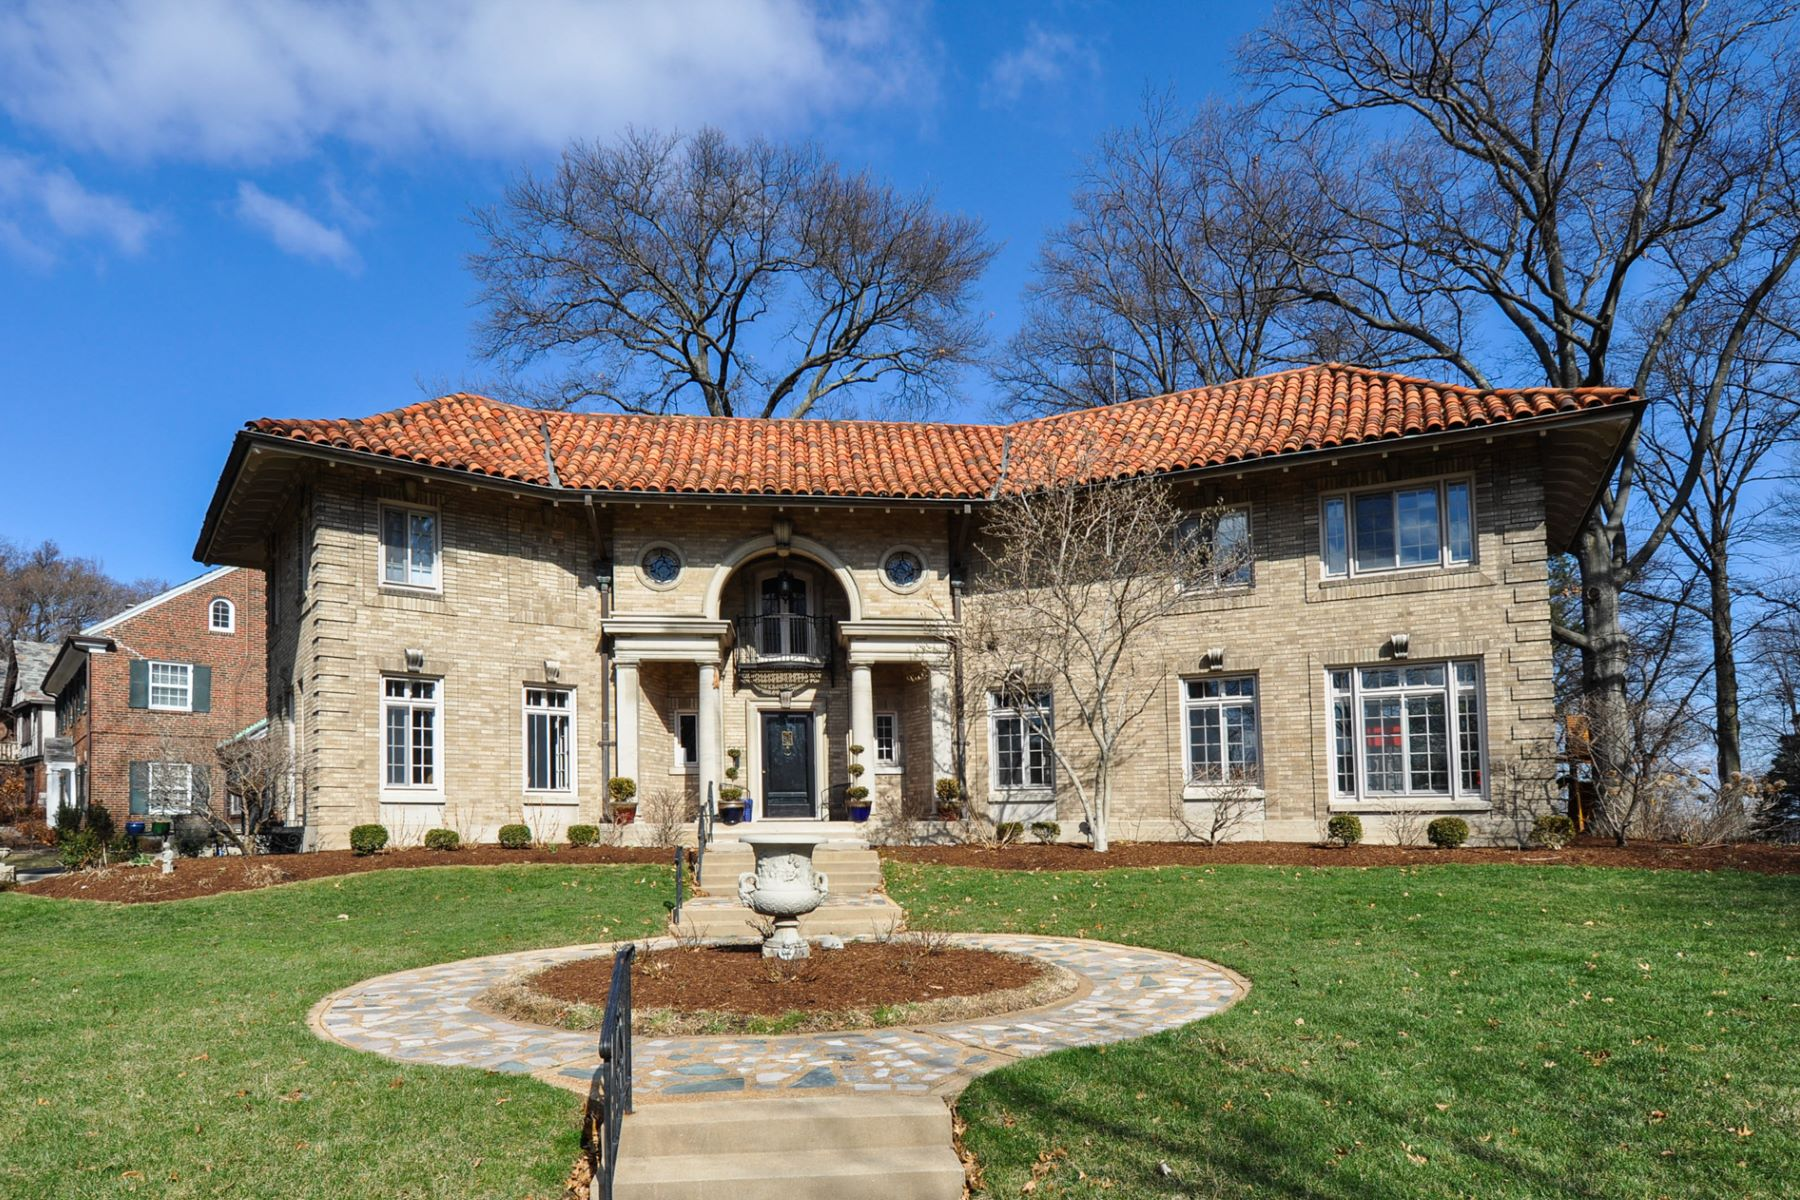 Property for Sale at Italian Renaissance masterpiece 7201 Greenway Avenue University City, Missouri 63130 United States